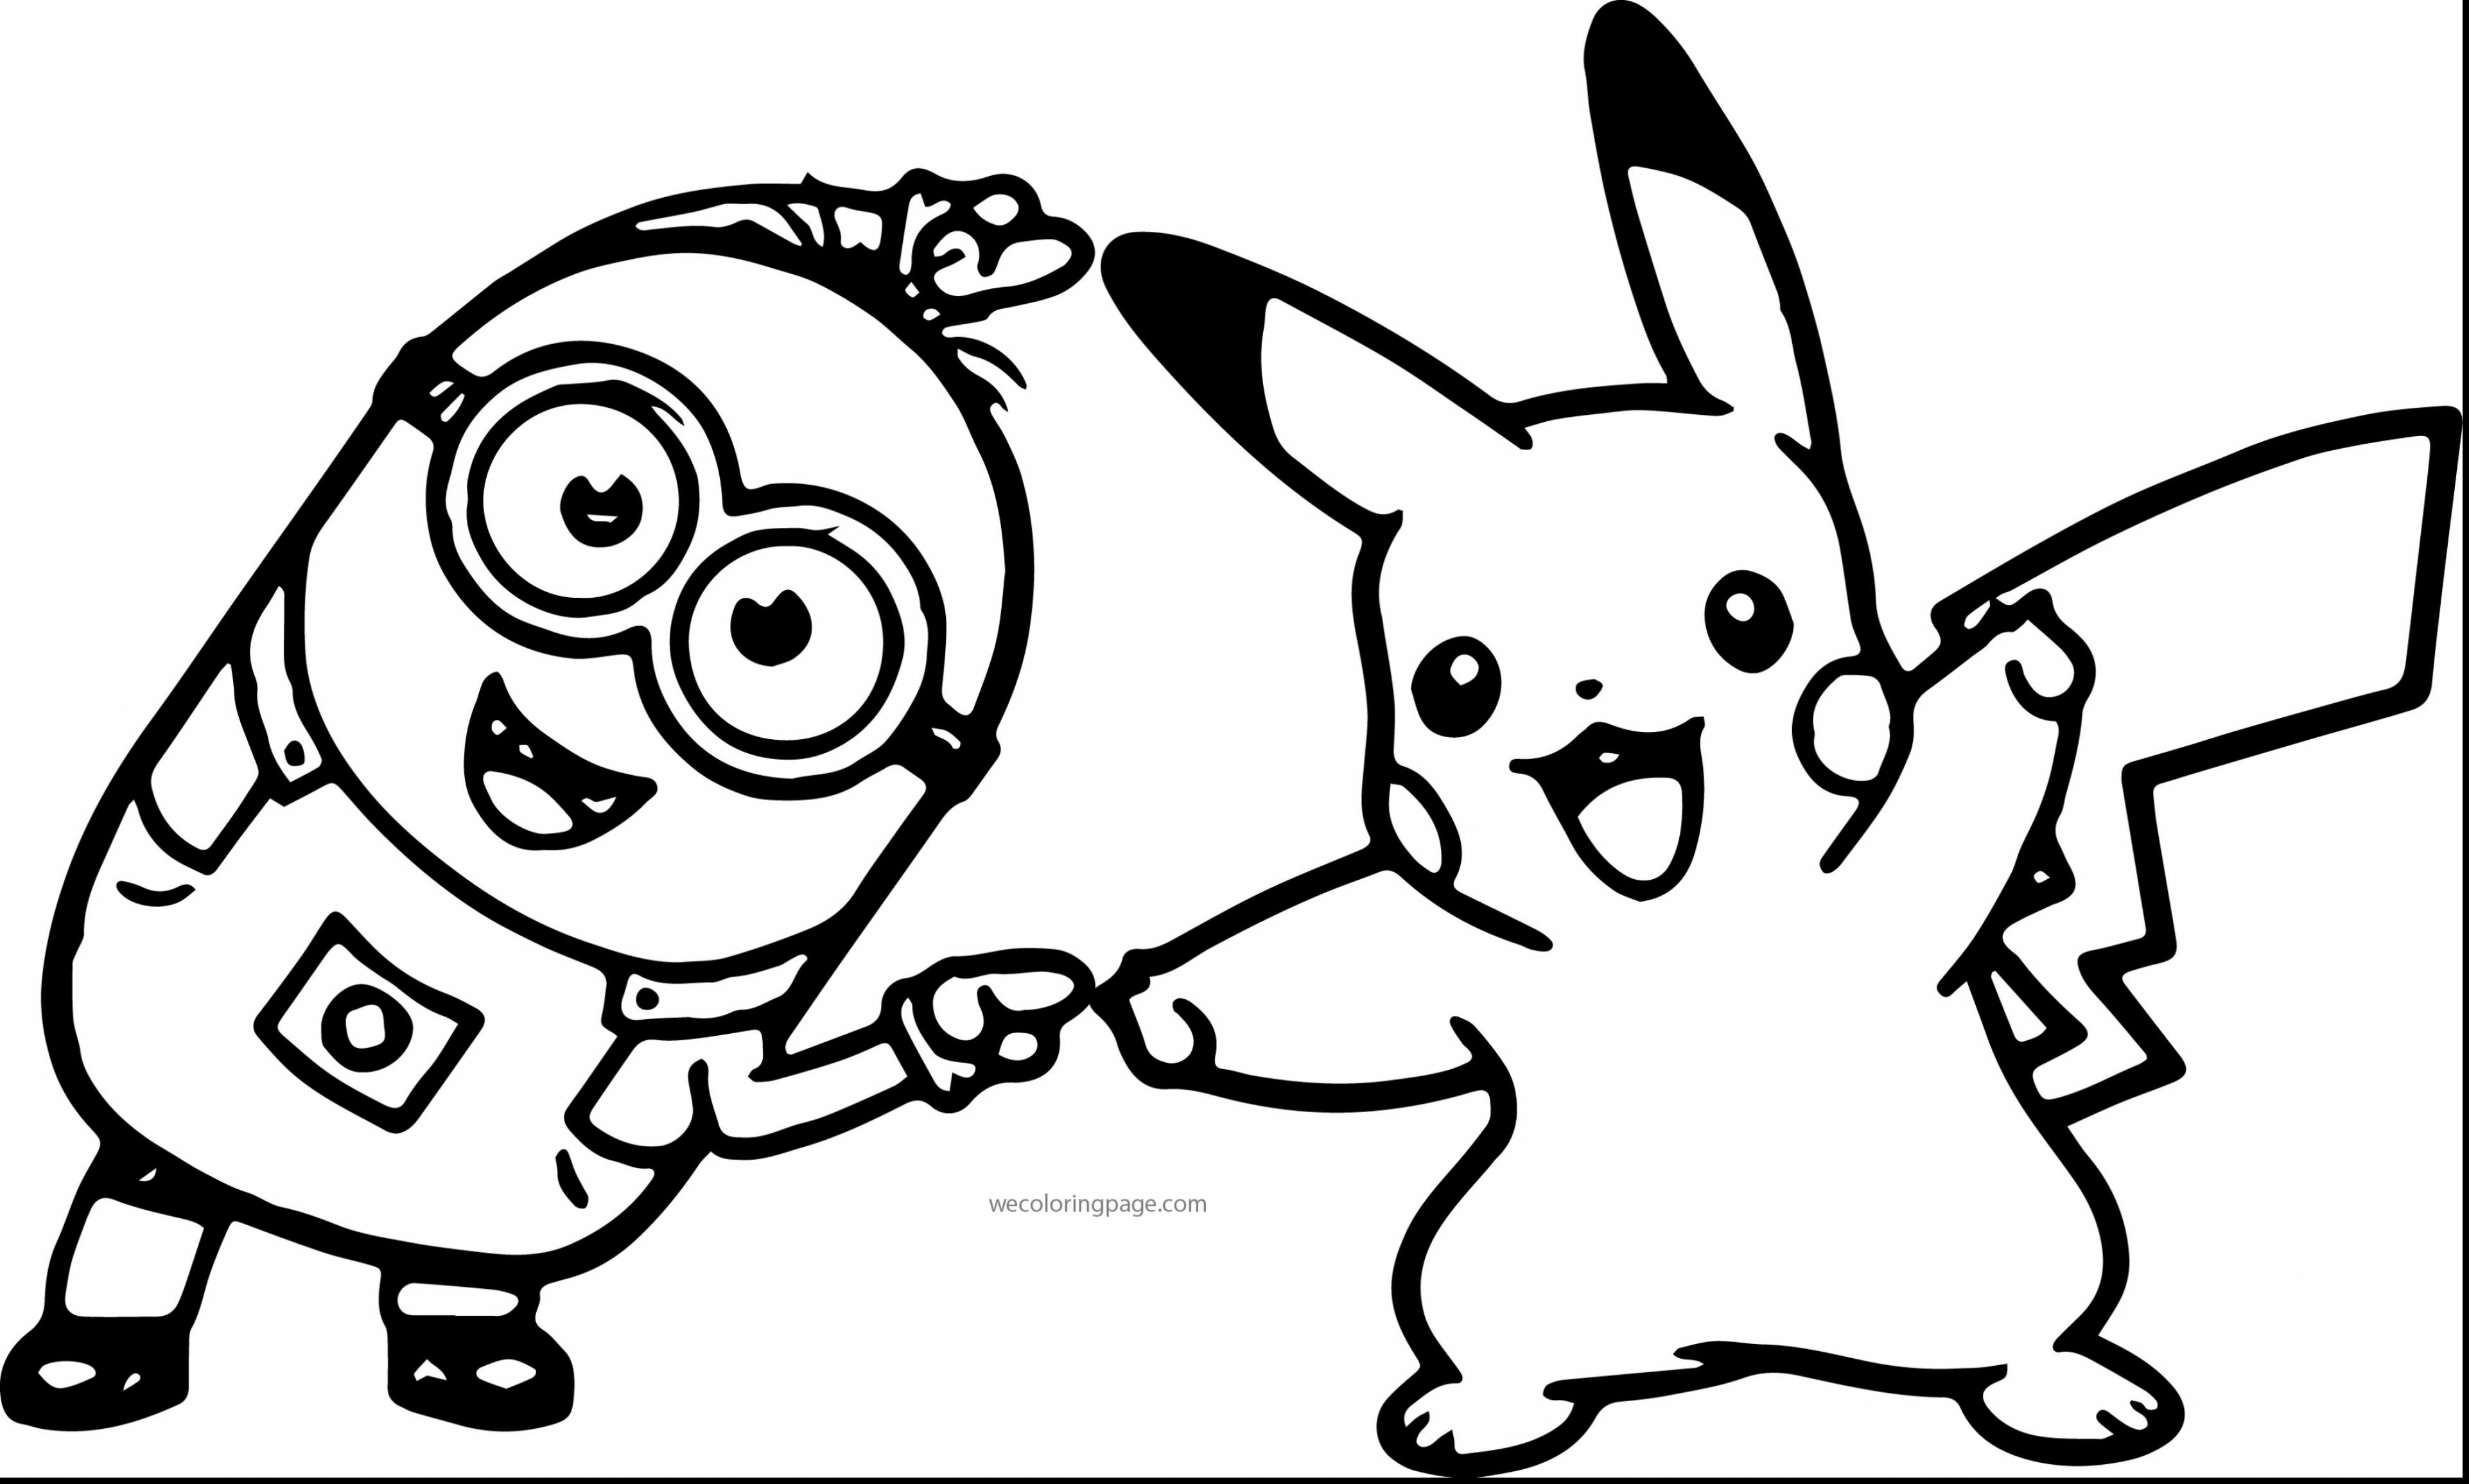 pikachu coloring pages at getdrawings free